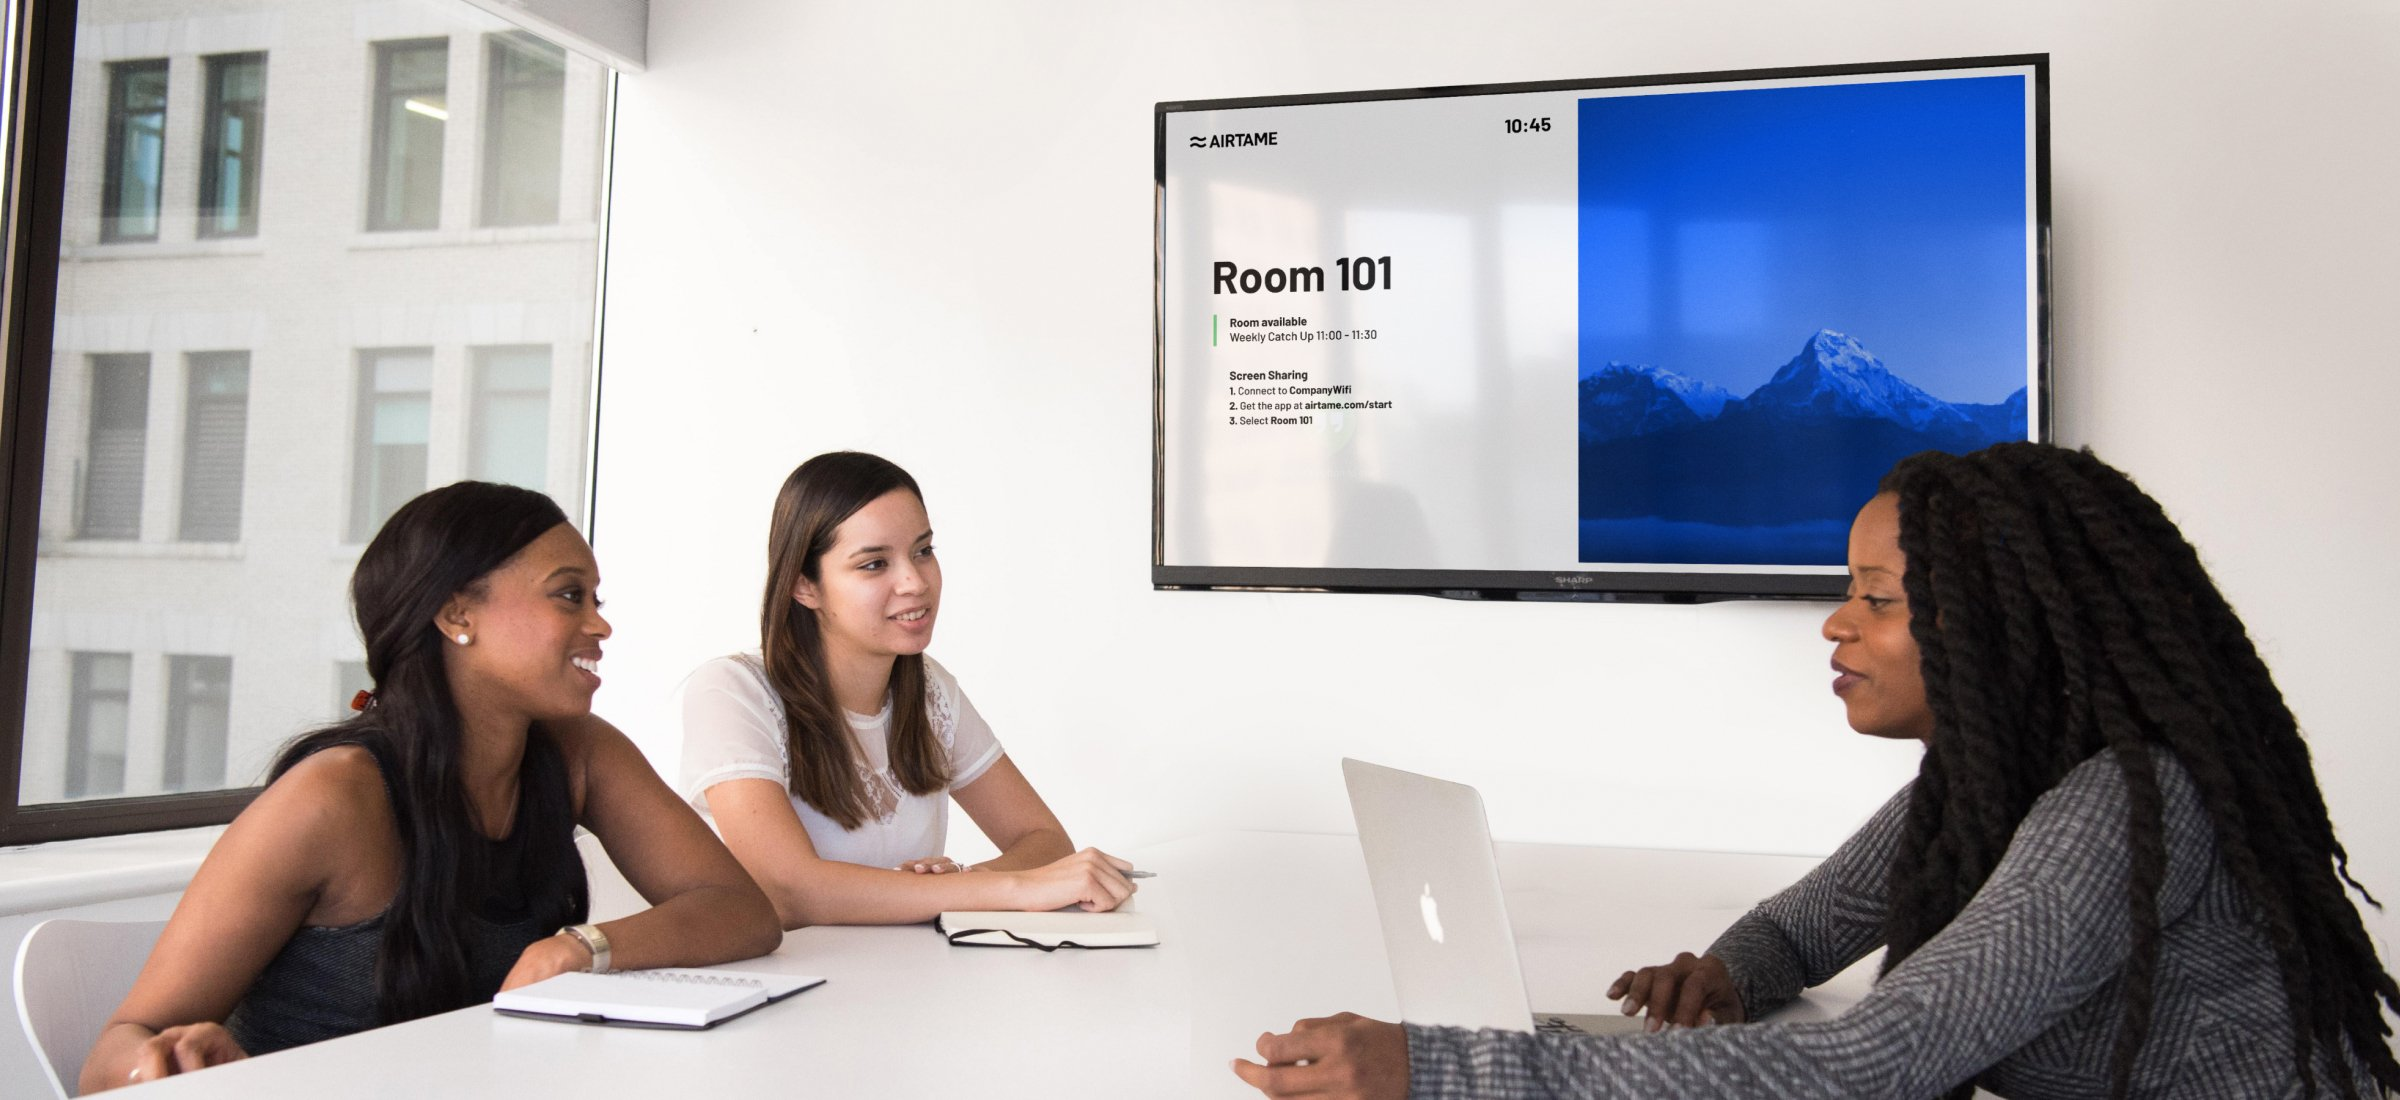 How digital signage can promote safety and awareness in meeting rooms